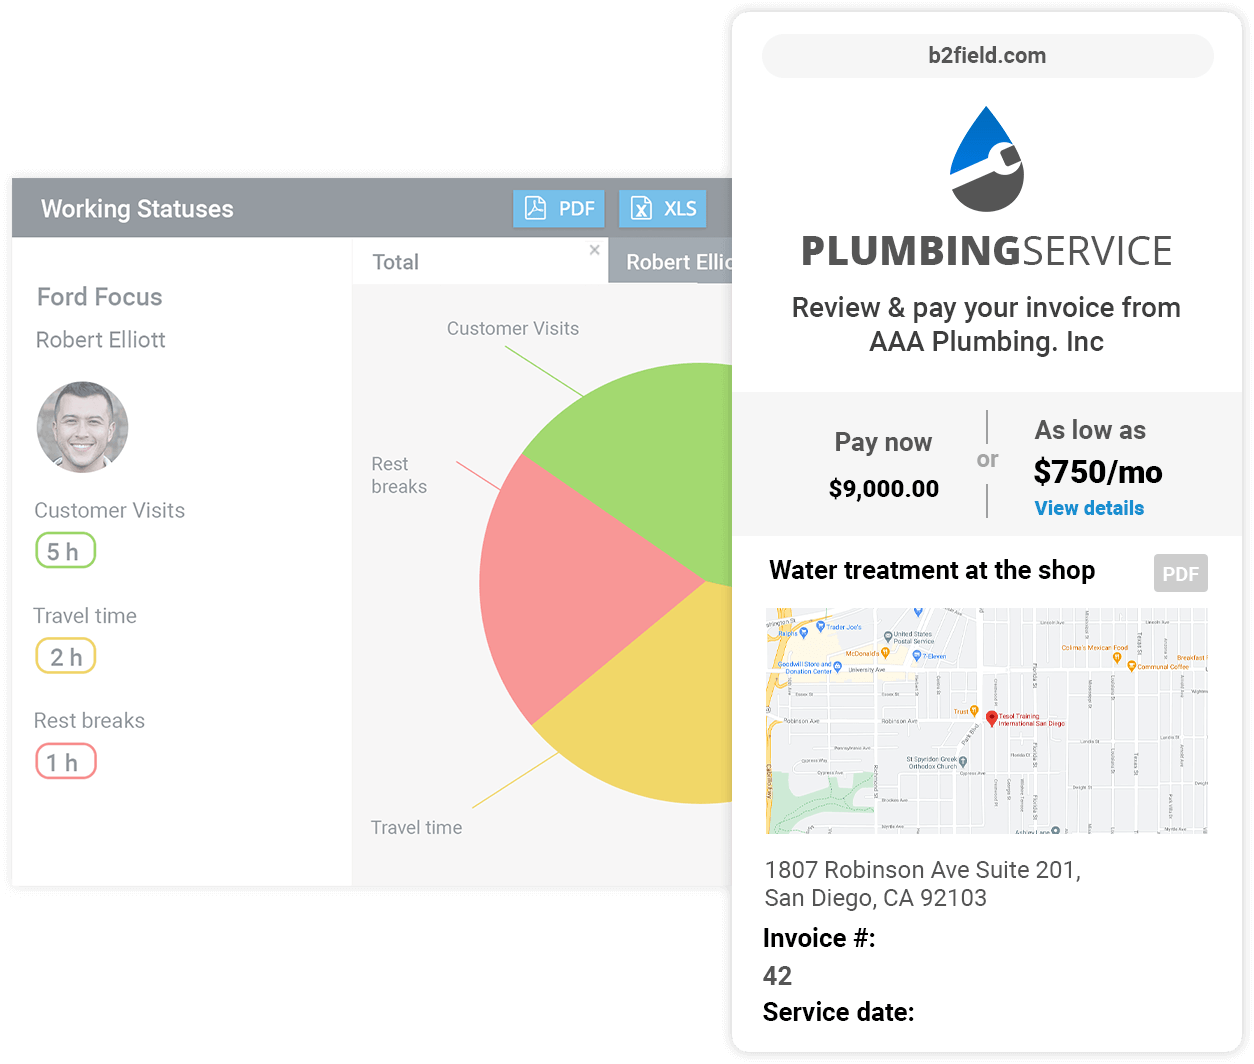 Plumbing Service Software you need: Invoice, Estimate, Schedule & Dispatch